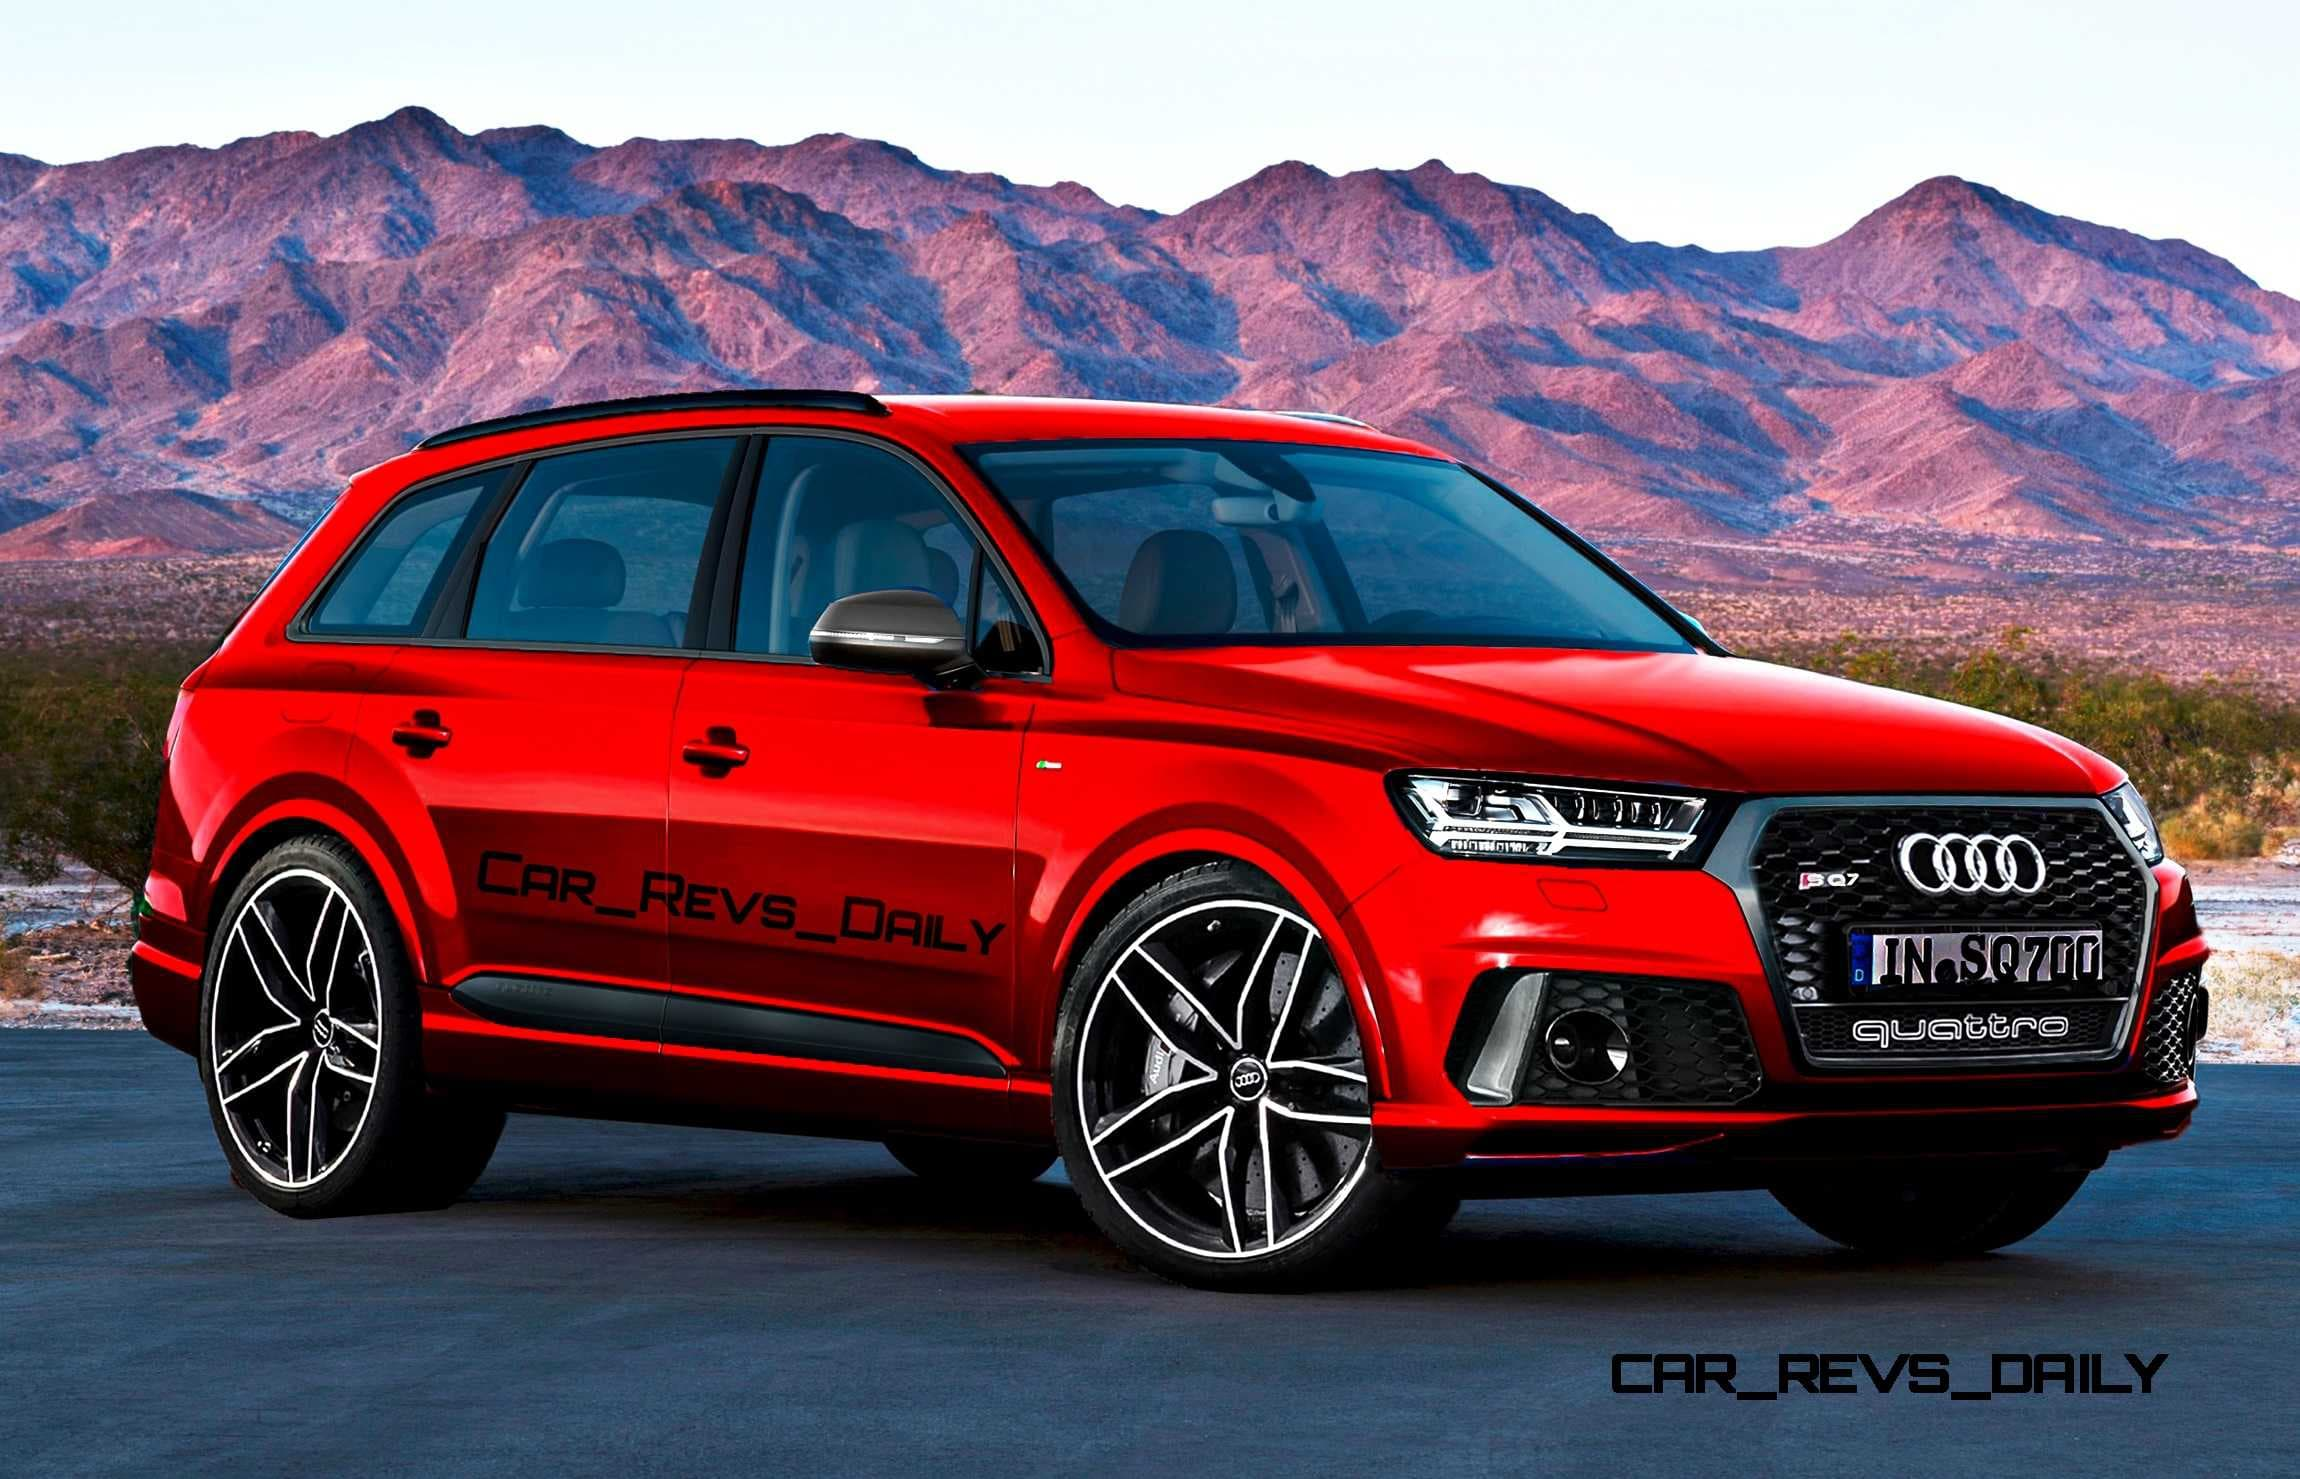 Audi Suv Models >> Audi Q7 2016 S Line wallpapers High Resolution 15+